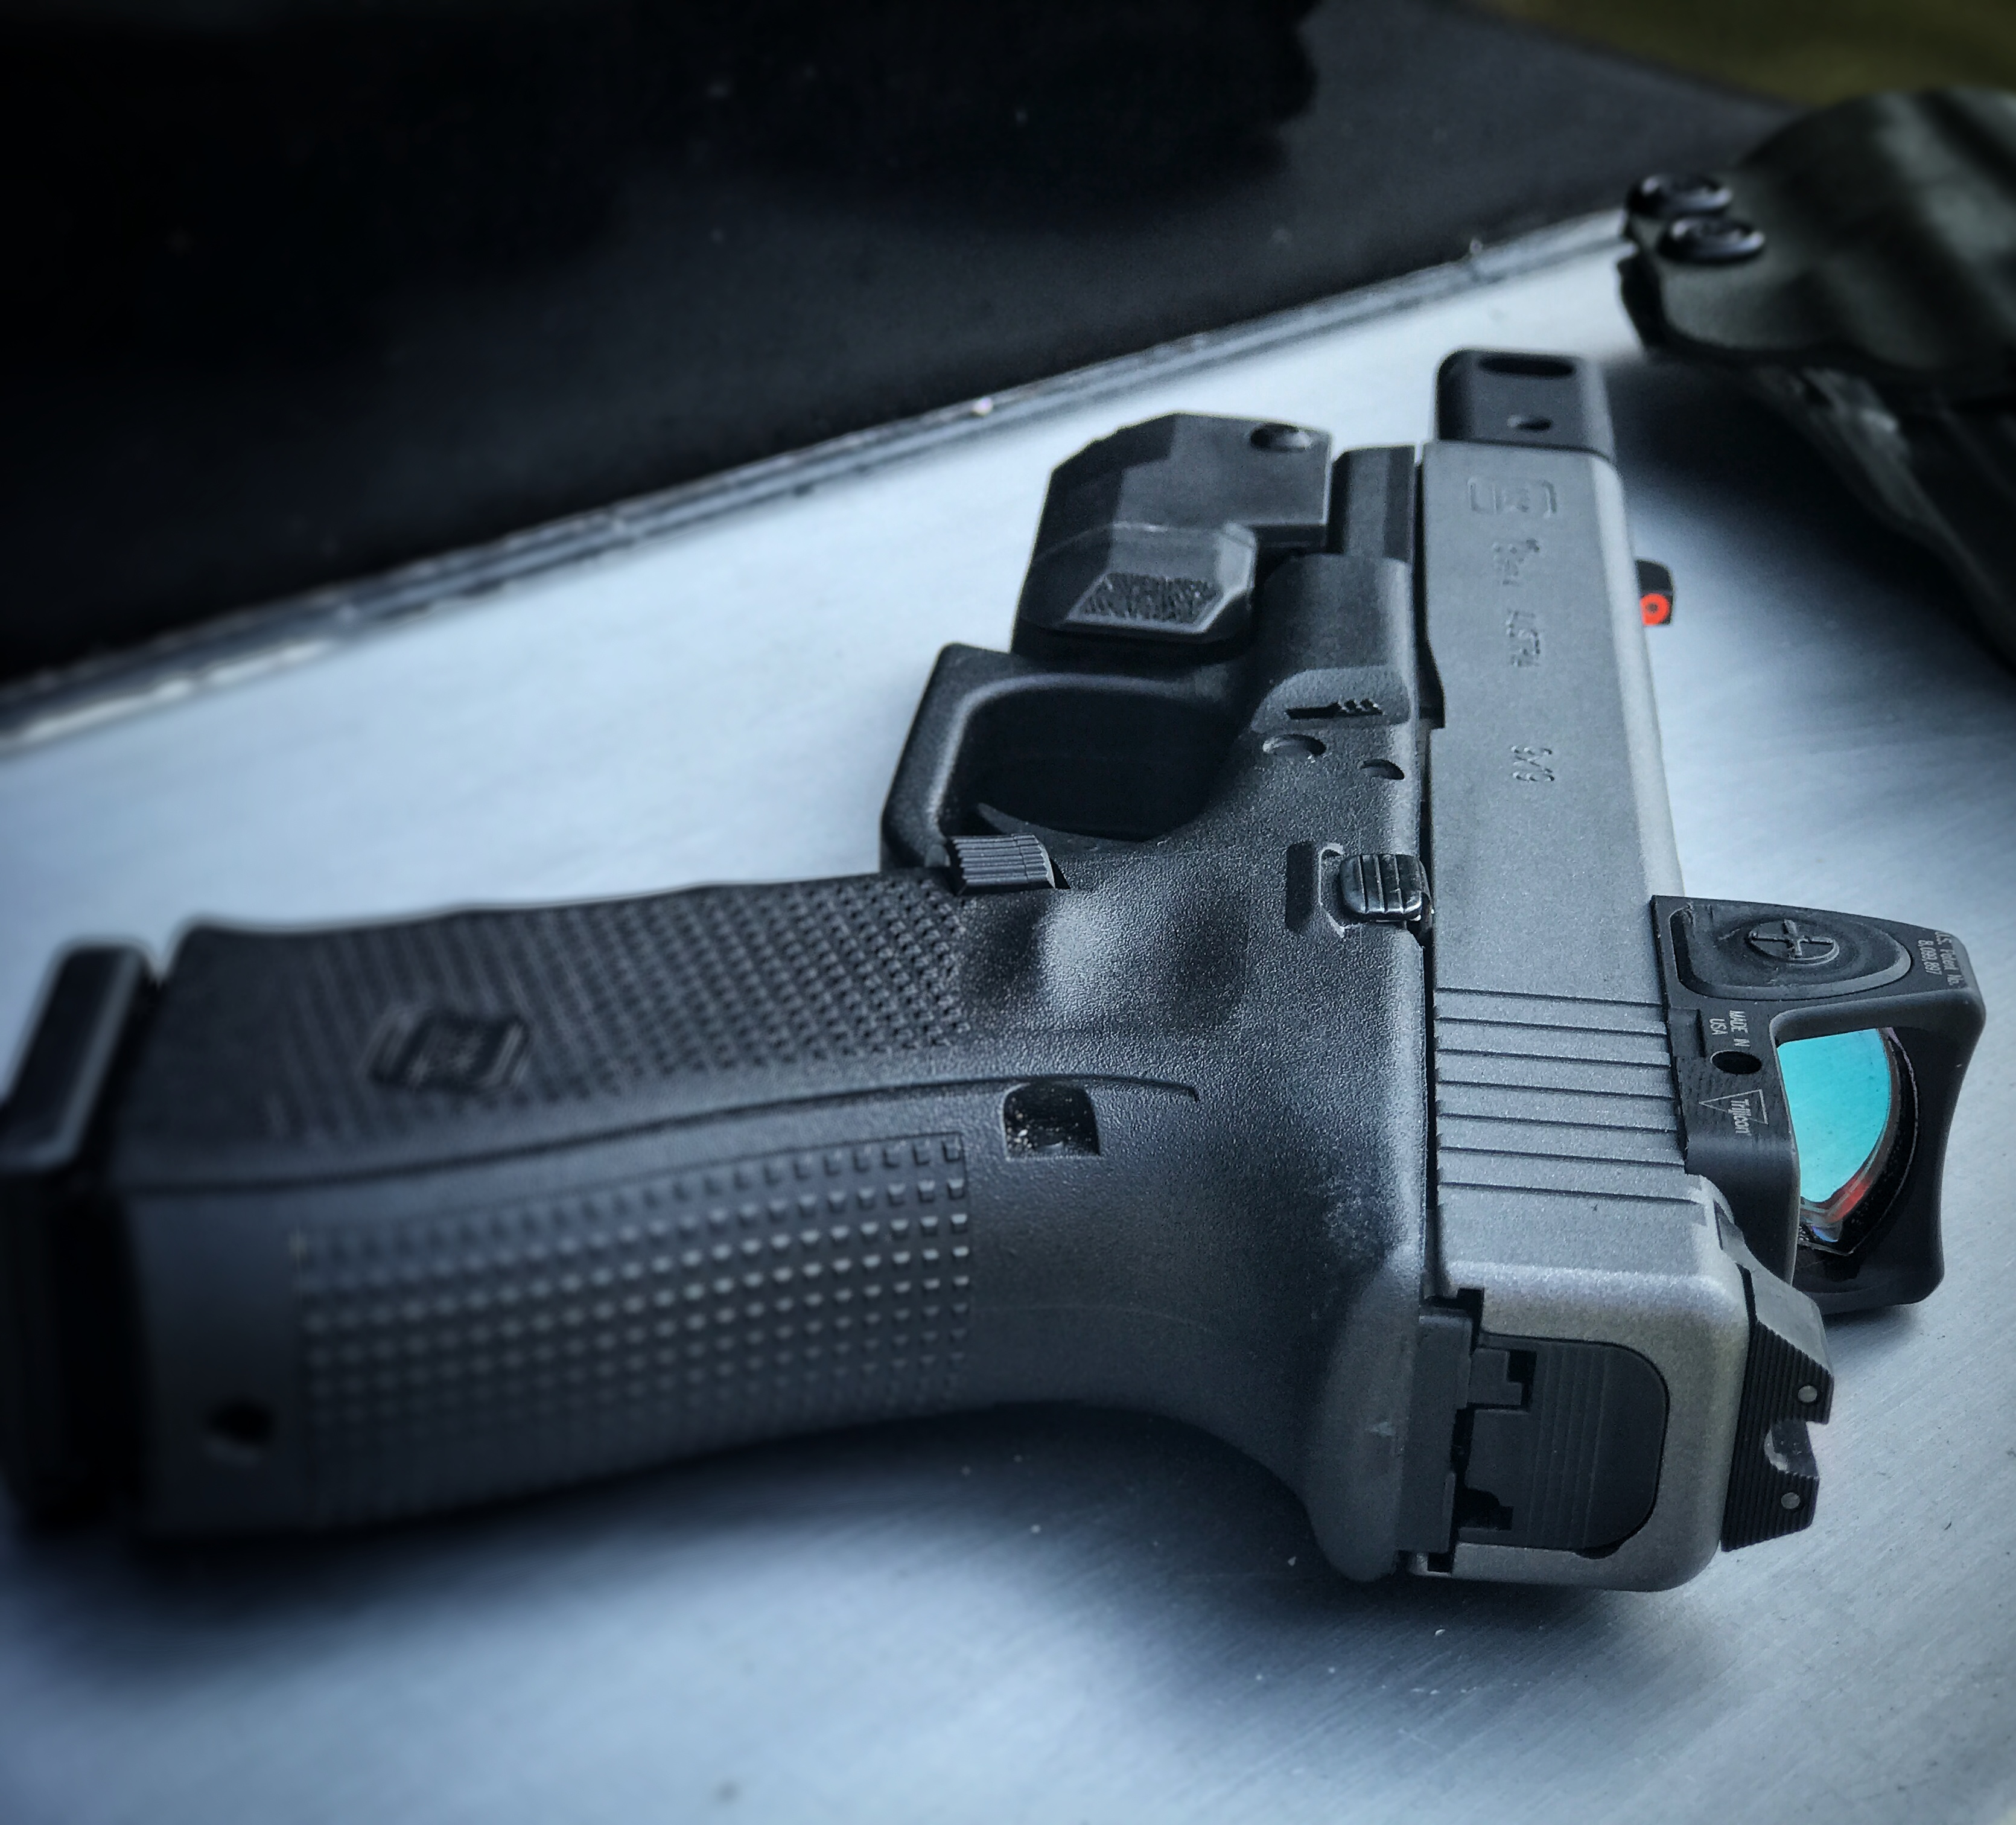 G19 with APLc and KKM Compensator with RMR